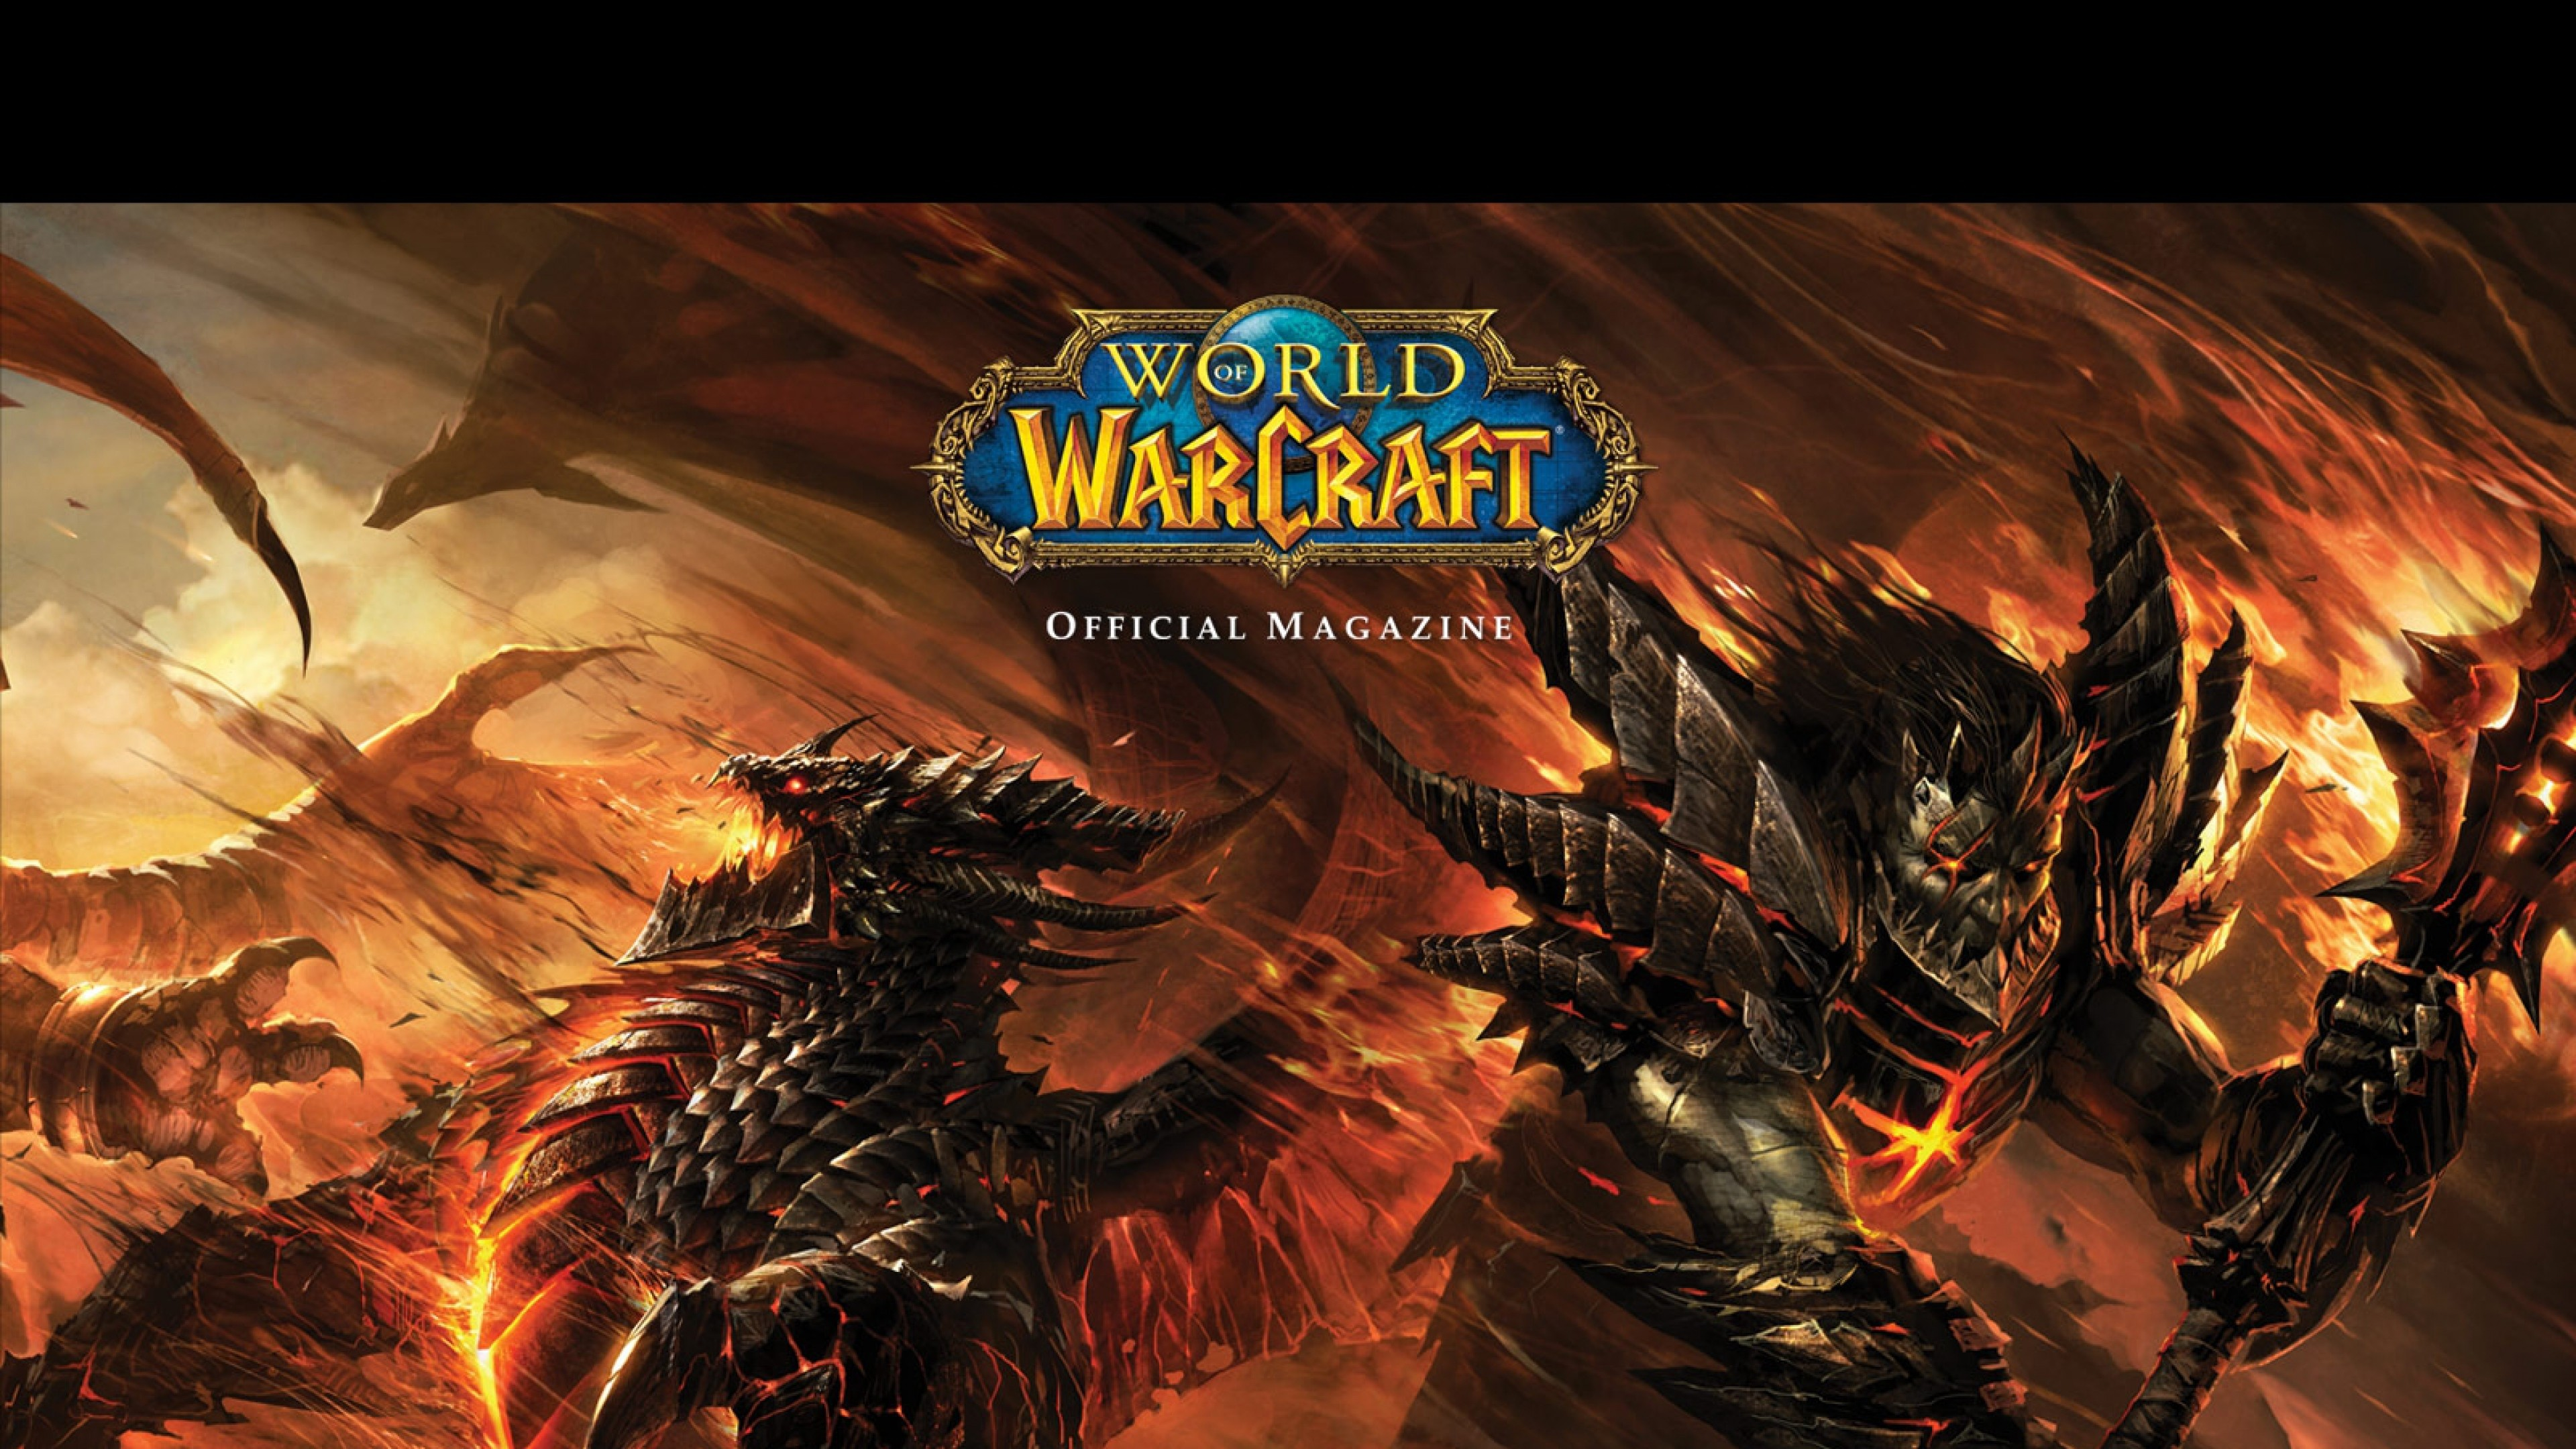 Wallpaper world of warcraft, monsters, fire, wildfire